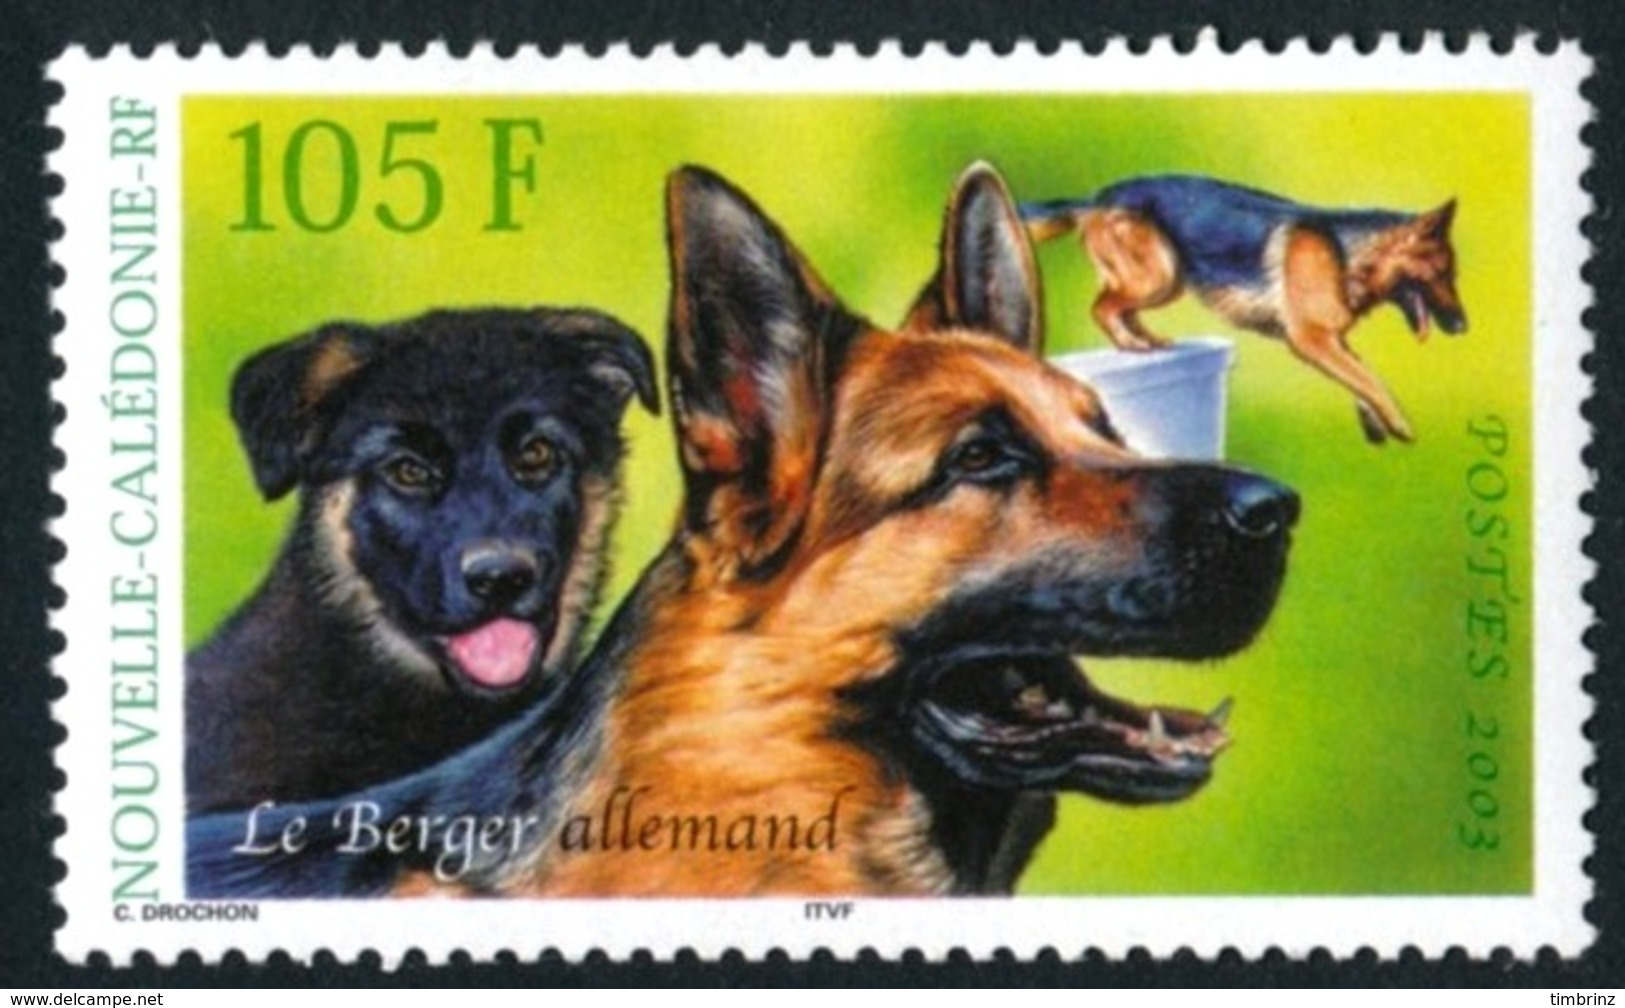 NOUV.-CALEDONIE 2003 - Yv. 905 NEUF   Faciale= 0,88 EUR - Chien Berger Allemand  ..Réf.NCE24261 - Nueva Caledonia